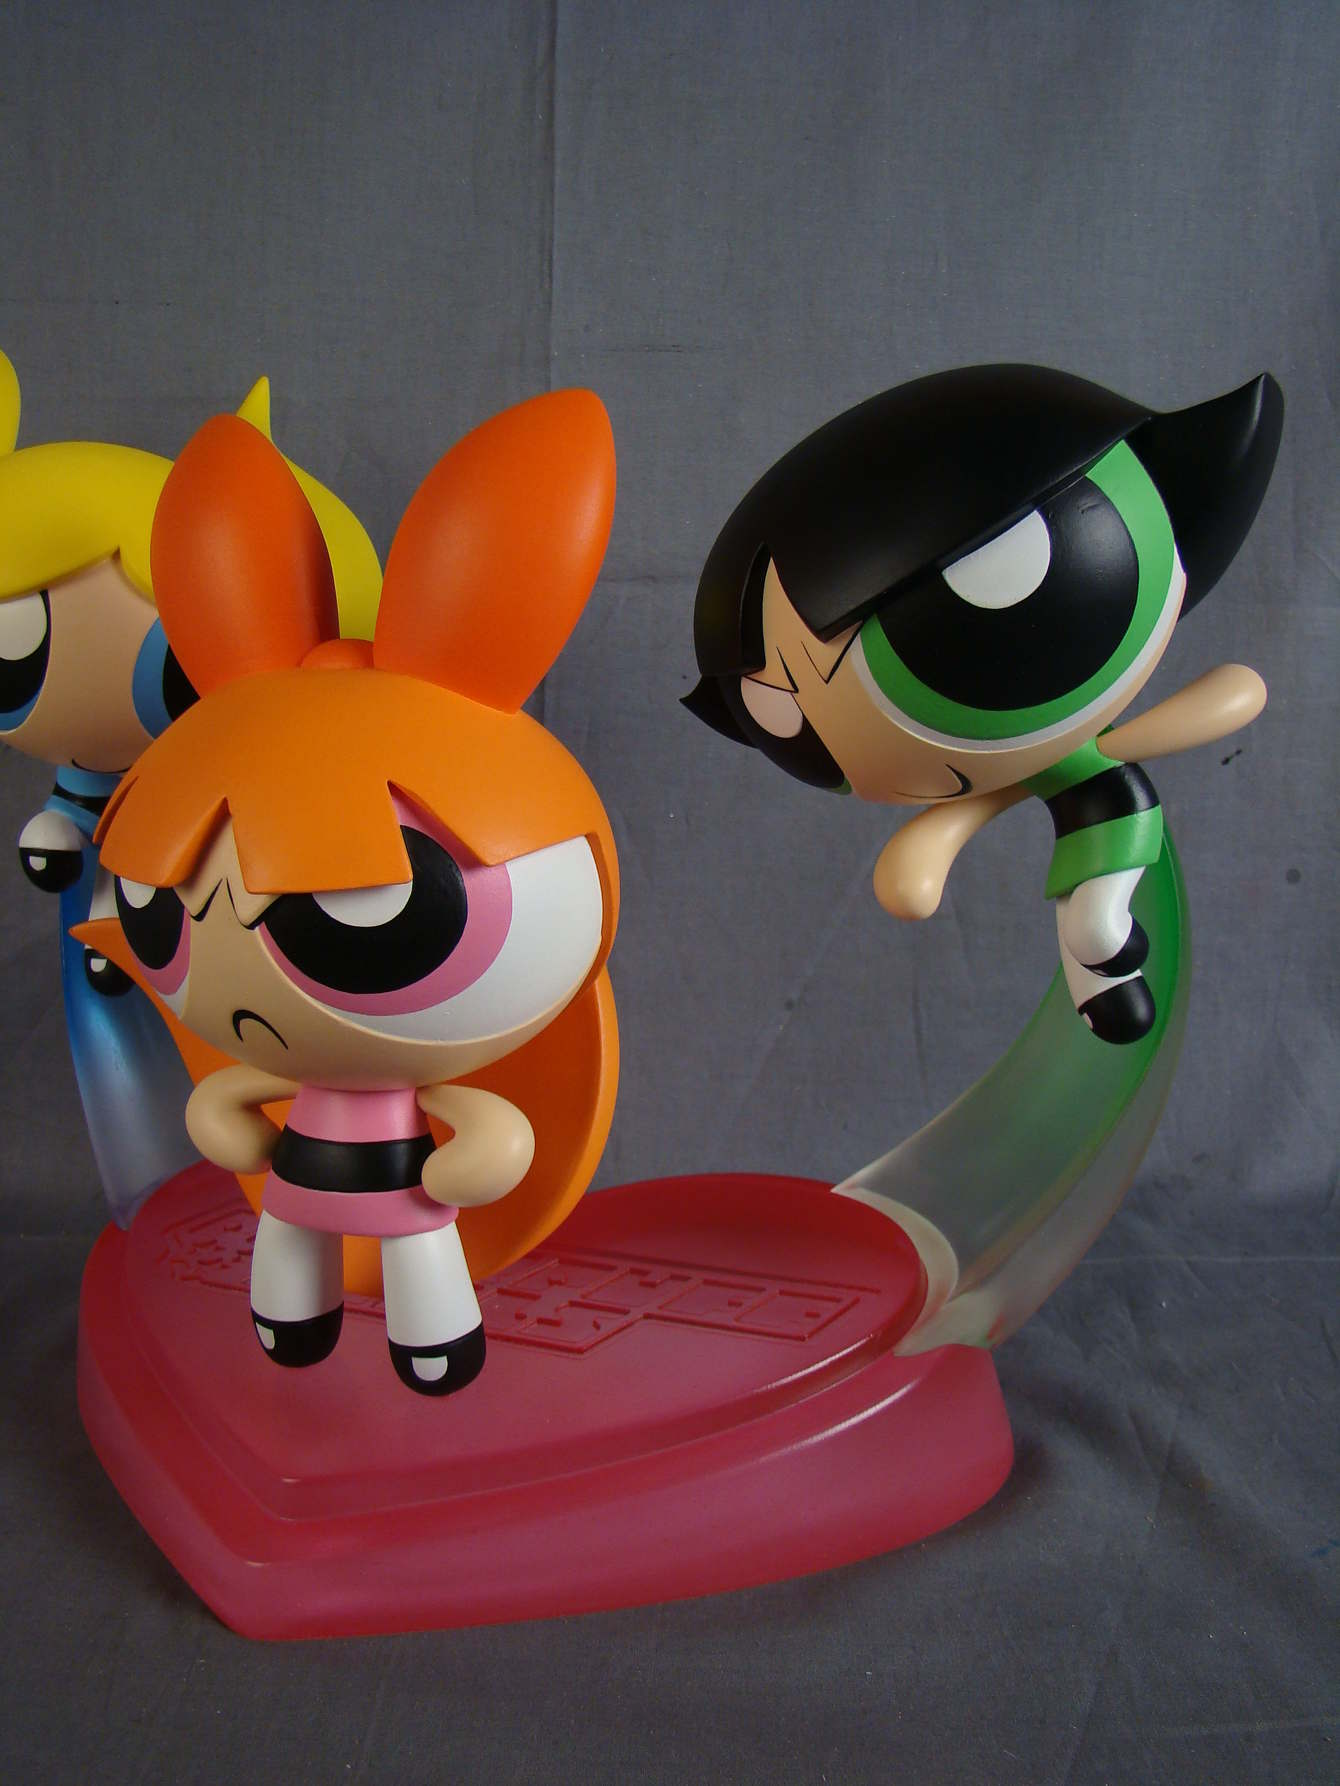 Cartoon-Network-Powerpuff-Girls-DSC06703_1340_c.JPG